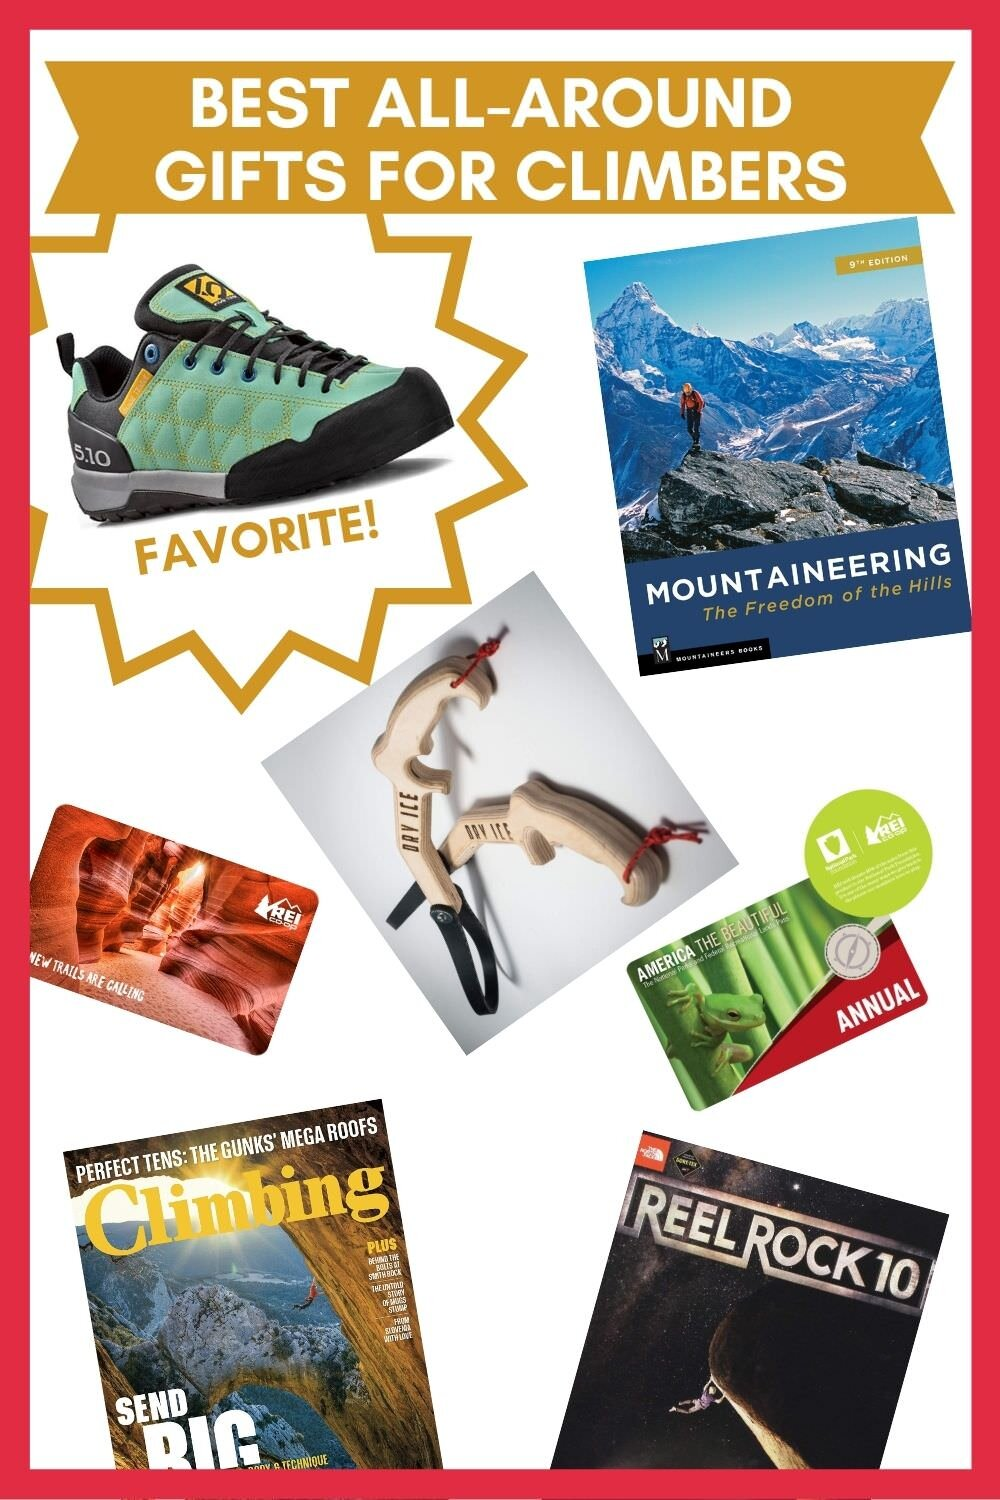 Great all-around great gifts for climbers